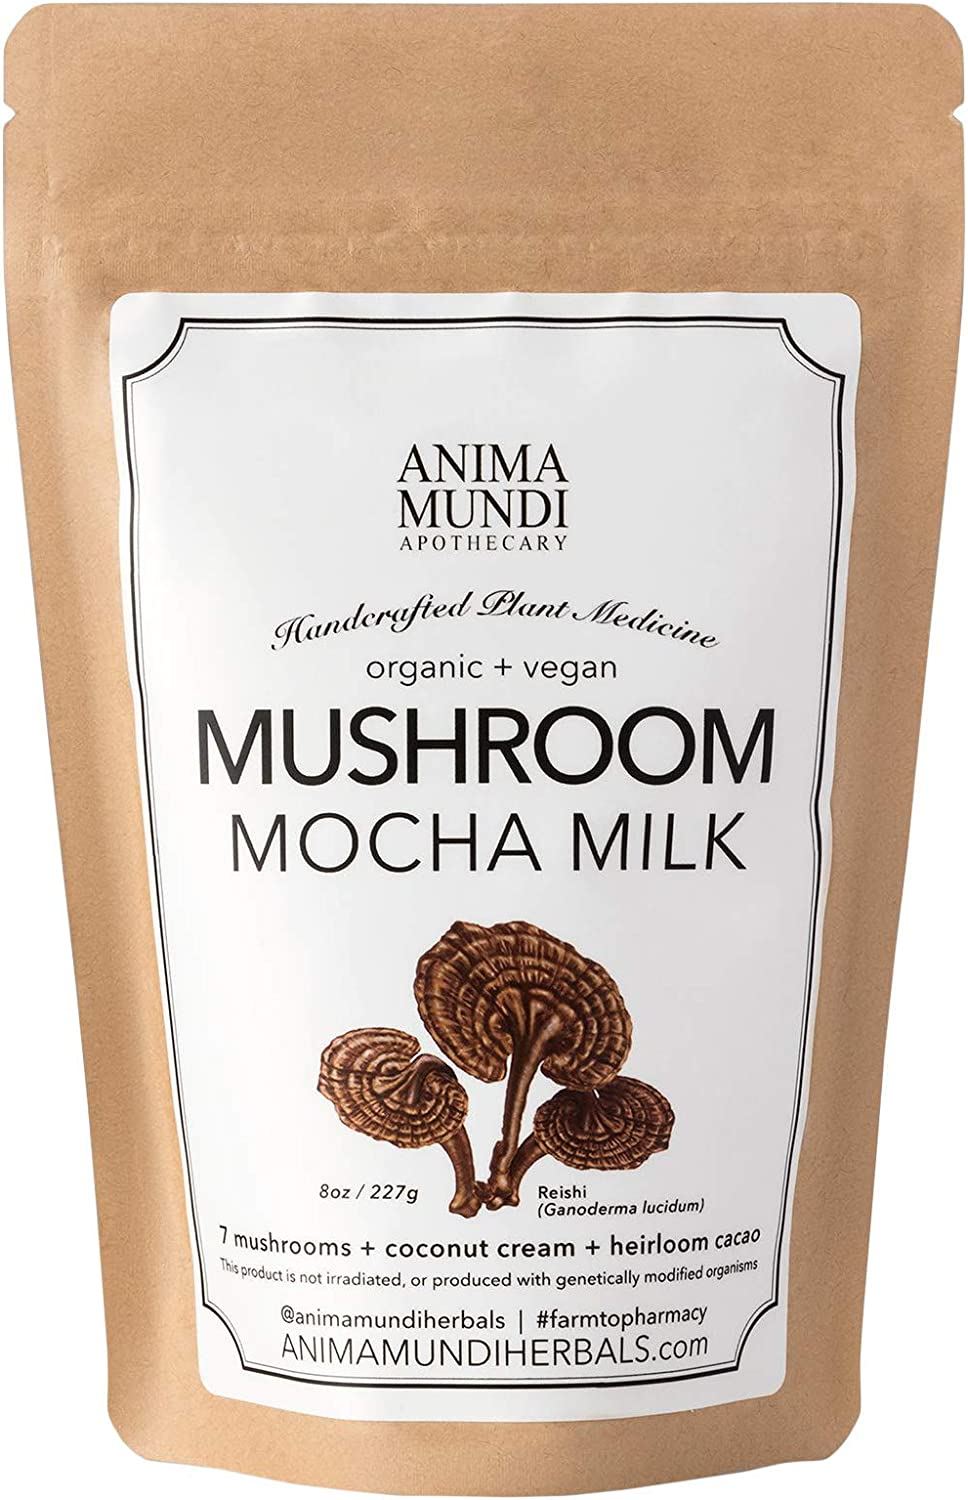 Anima Mundi Mushroom Mocha Milk – Organic Instant Creamer with Coconut, 7 Mushrooms Cacao Powder 8oz 227g